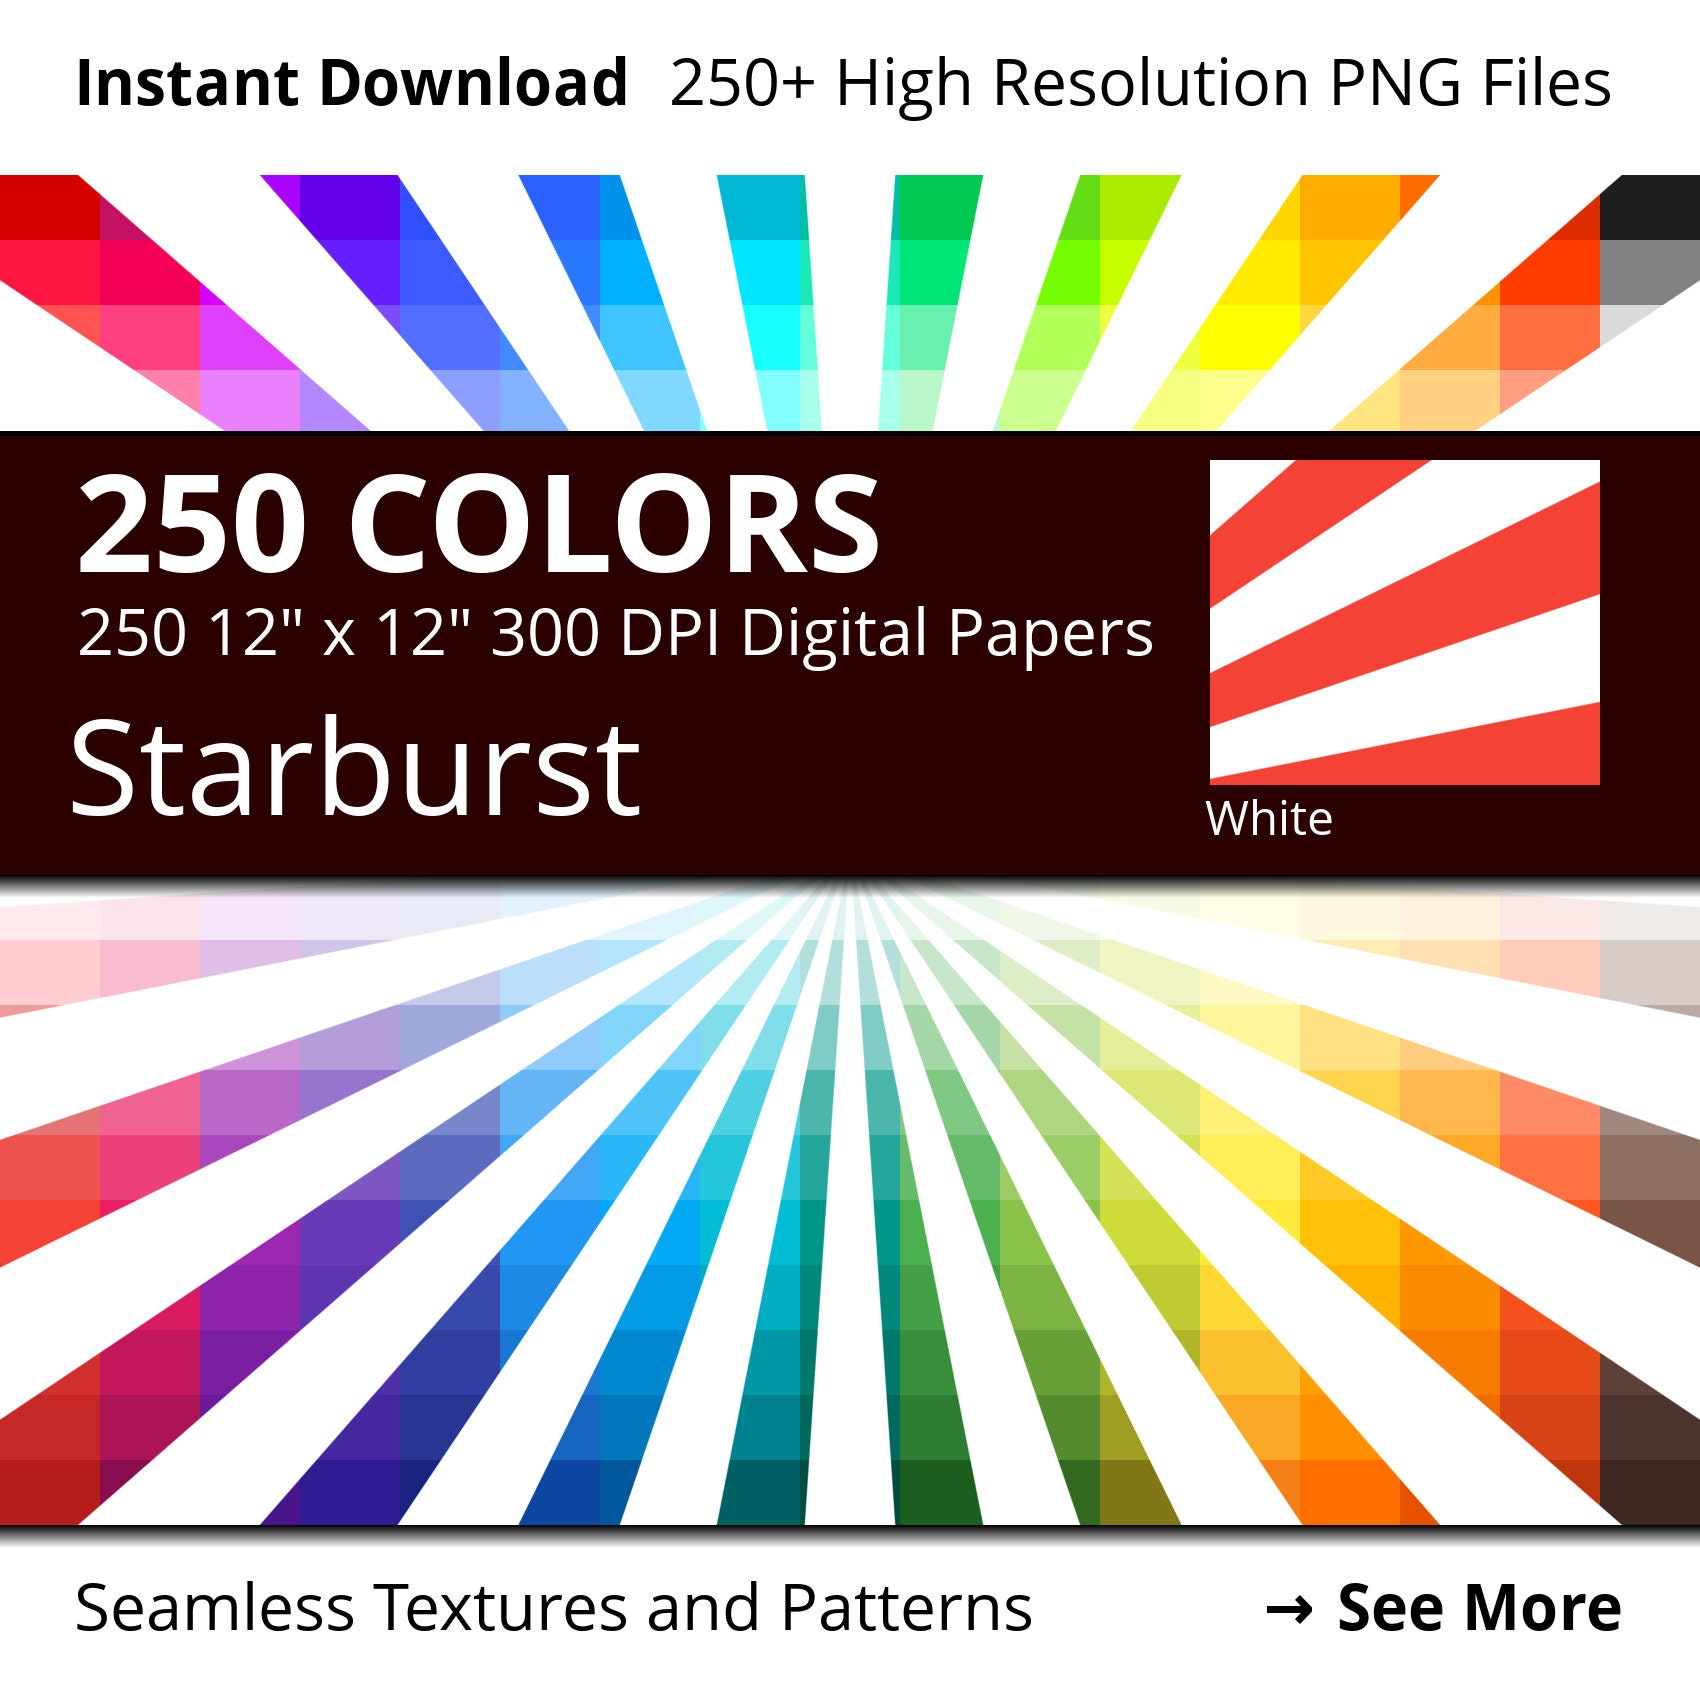 White Starburst Digital Paper Pack, 250 Colors Digital Paper Starburst  Scrapbooking Paper Download, Rainbow Colors Sunburst Pattern